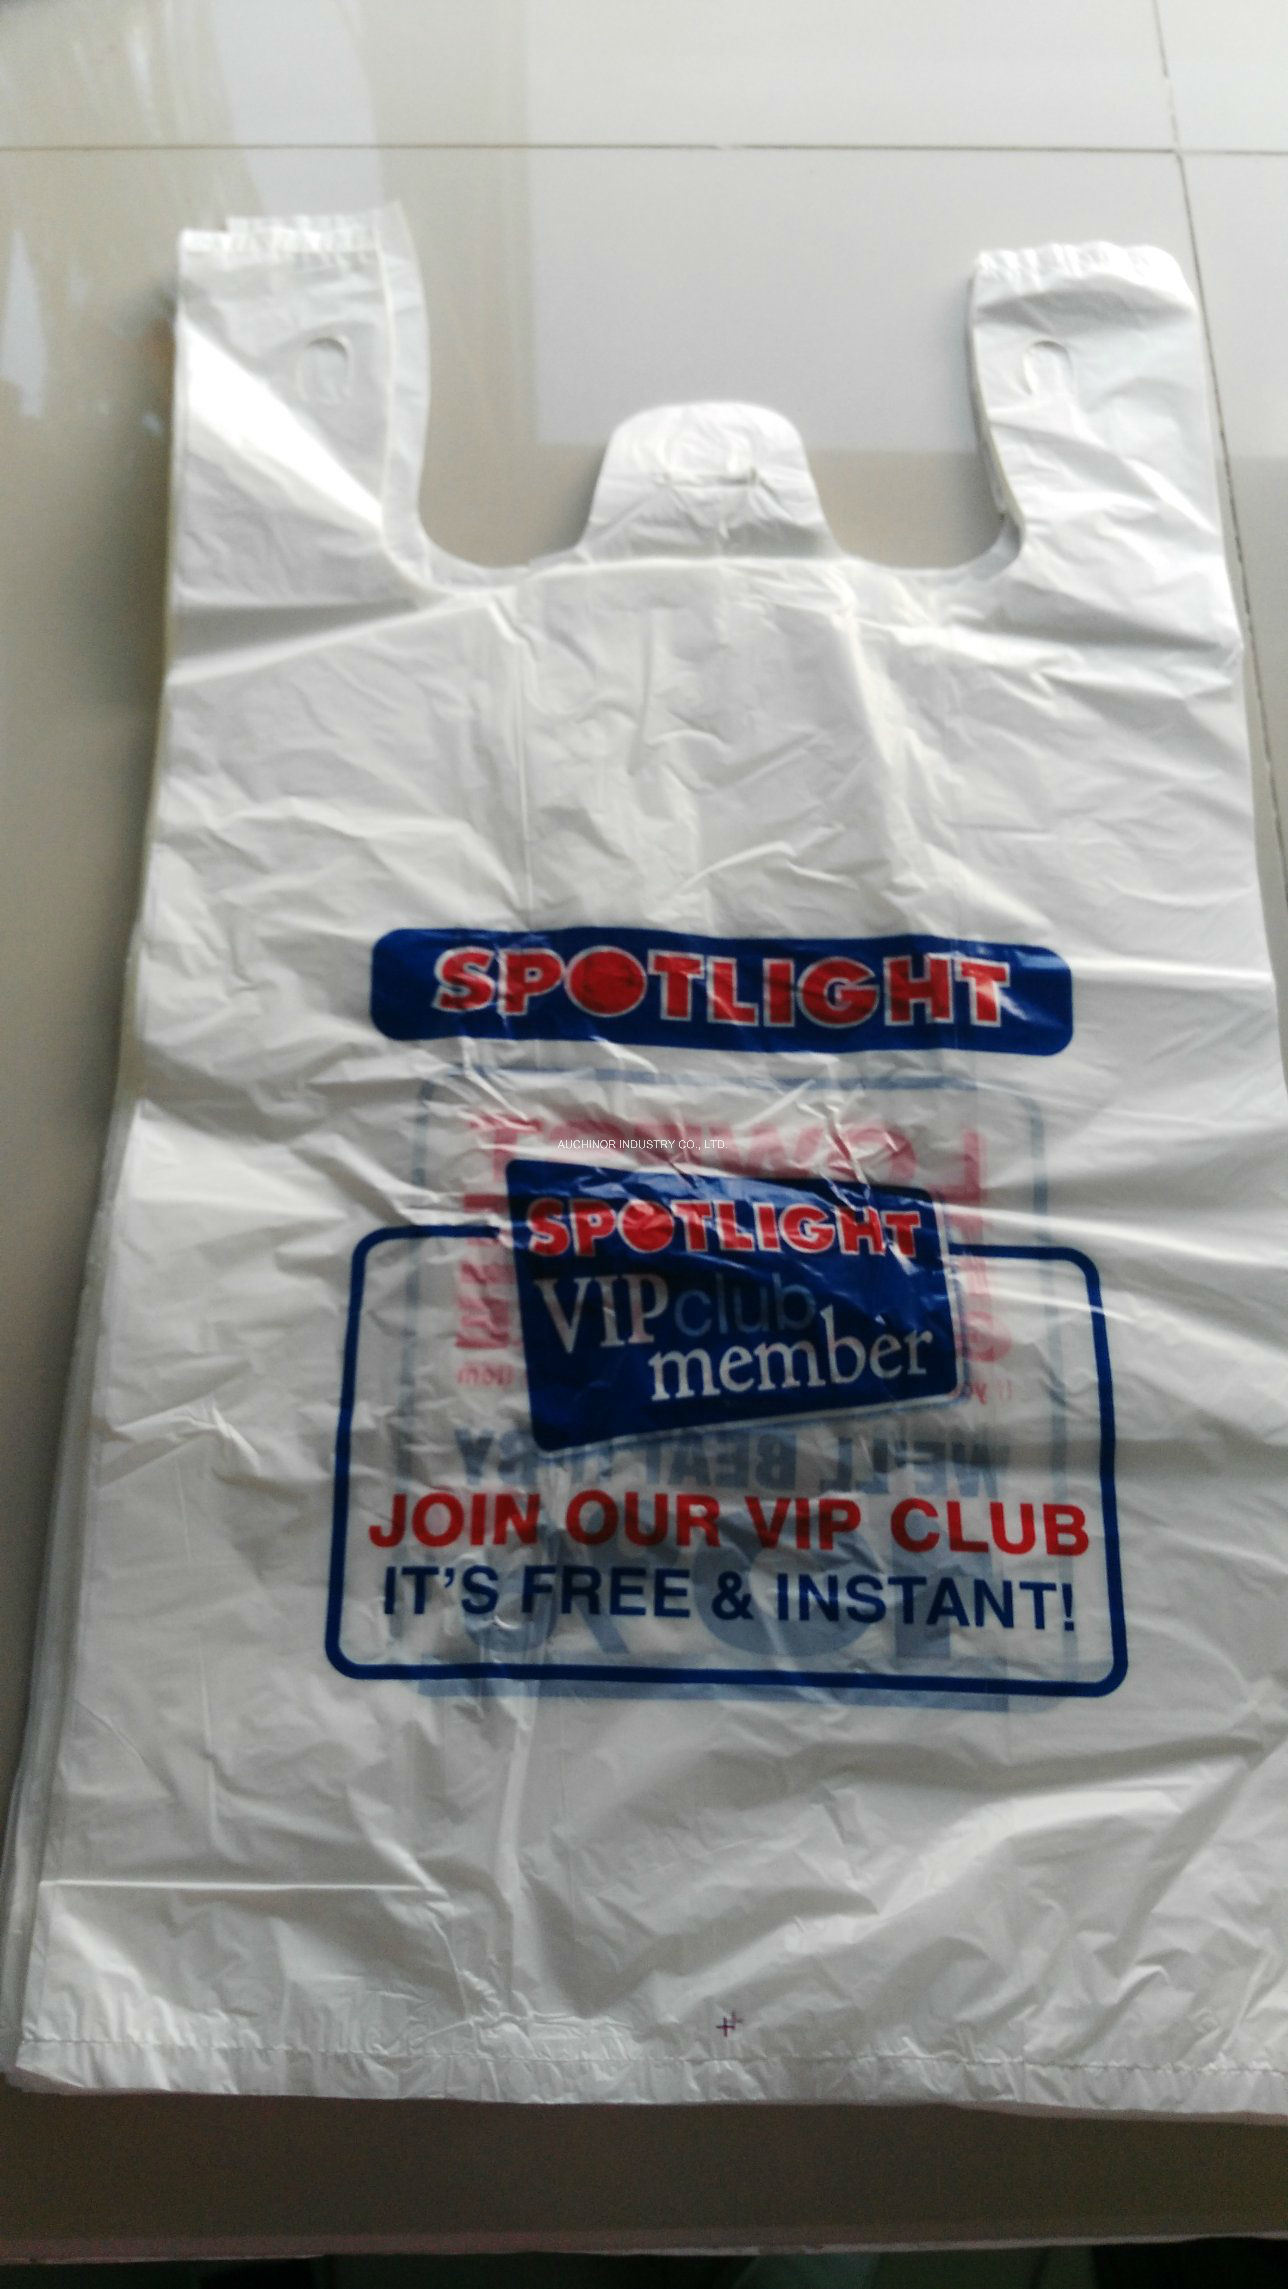 Die Cut Bag Patch Handle Bag Poly Die Cut Bag Boutique Bag Poly Handle Bag Shopping Bag Garment Bag Carrier Bag Plastic Bag Packaging Bag